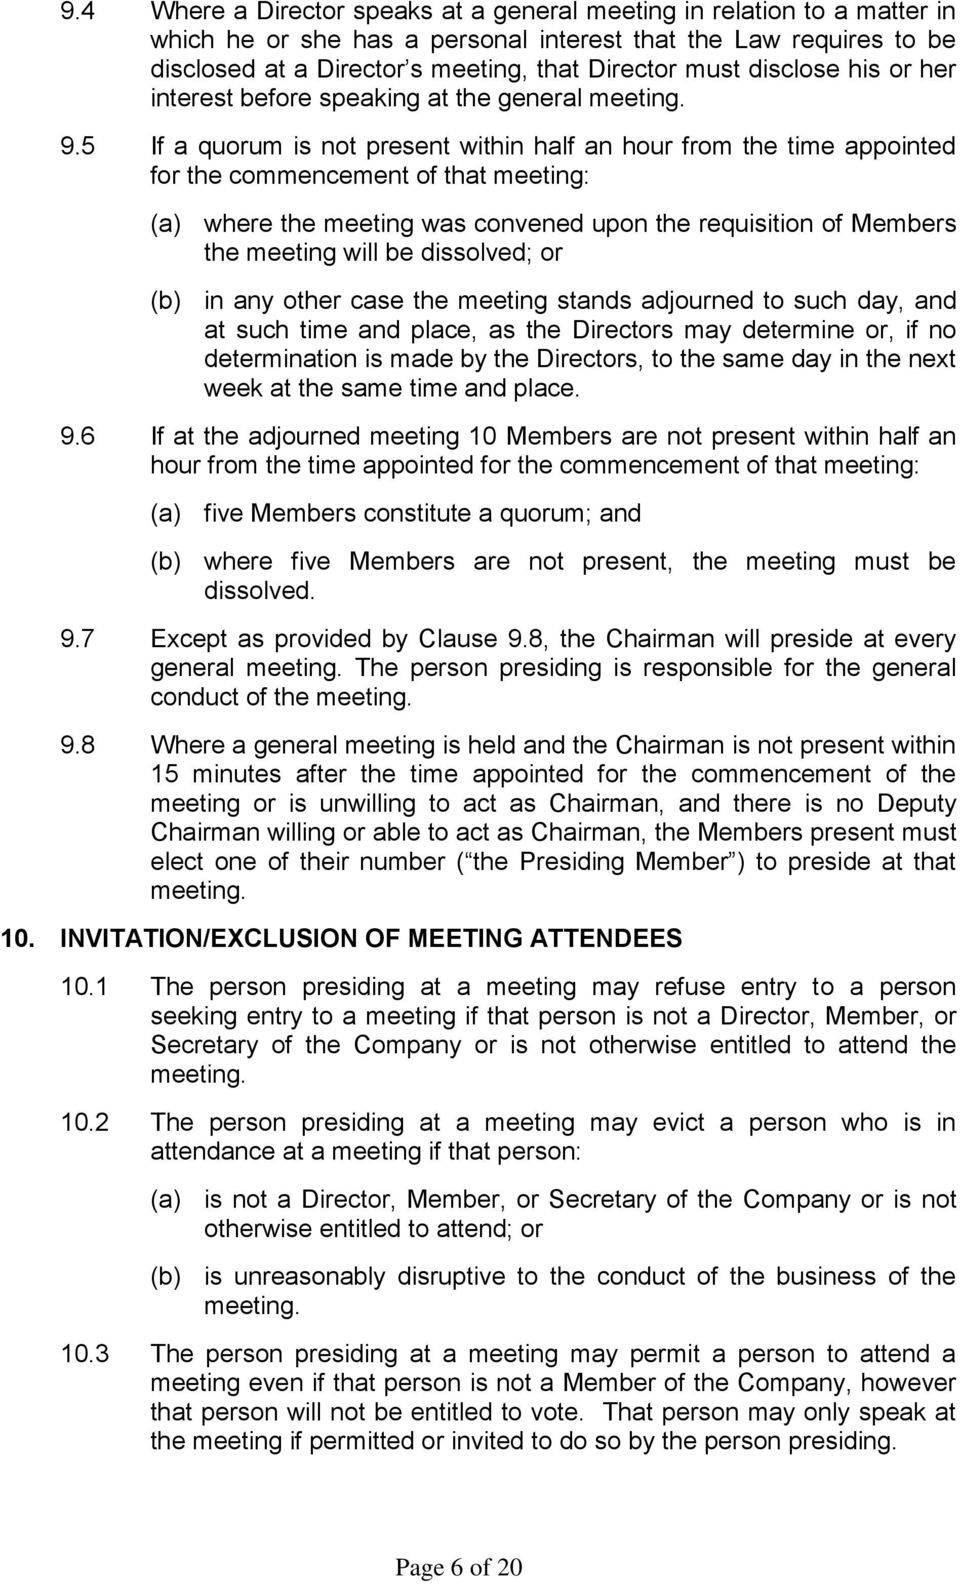 5 If a quorum is not present within half an hour from the time appointed for the commencement of that meeting: (a) where the meeting was convened upon the requisition of Members the meeting will be